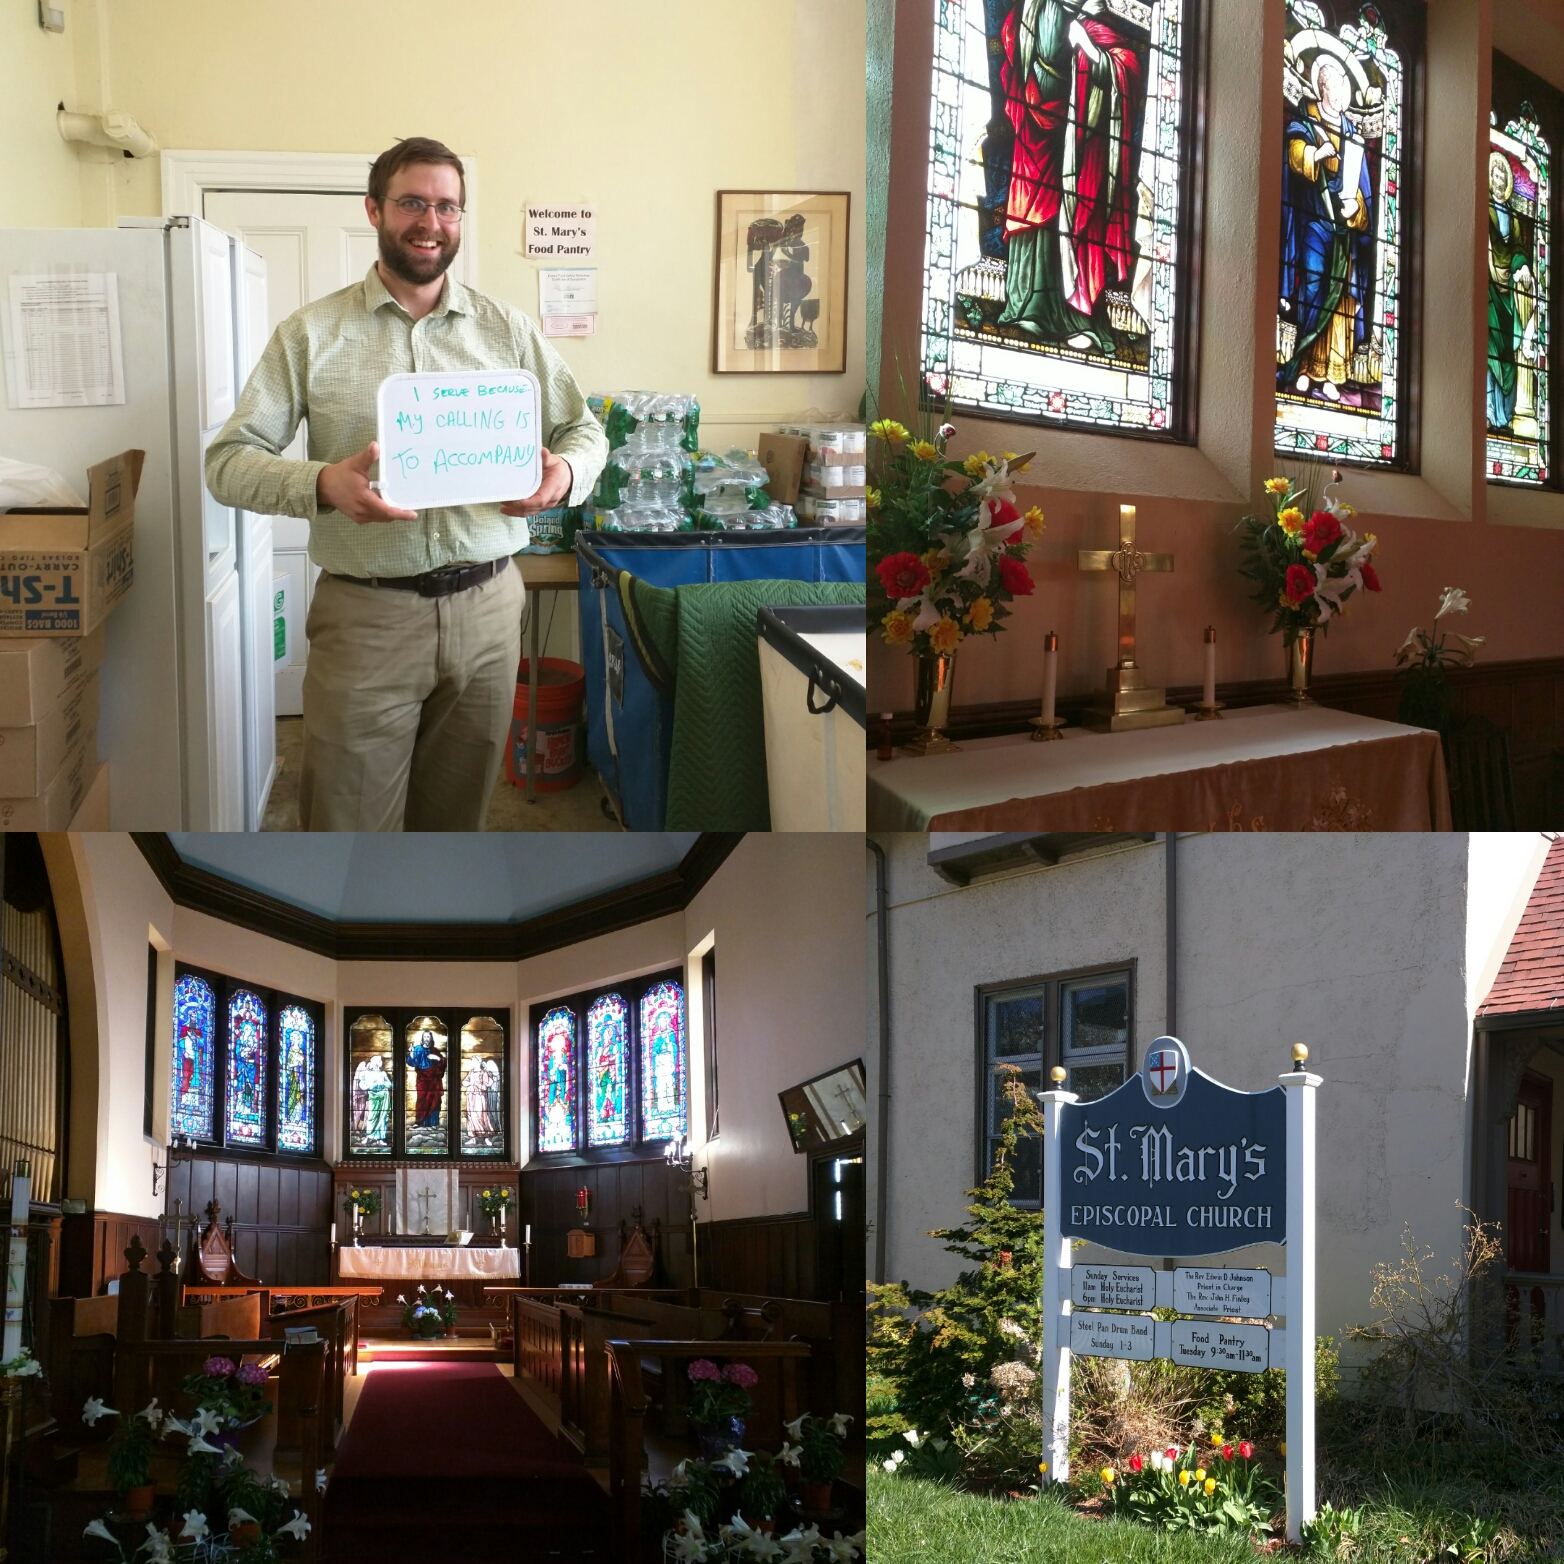 """""""I serve because my calling is to accompany"""" -William Harron, Emmaus Fellow at St. Mary's Episcopal Church in Dorchester"""